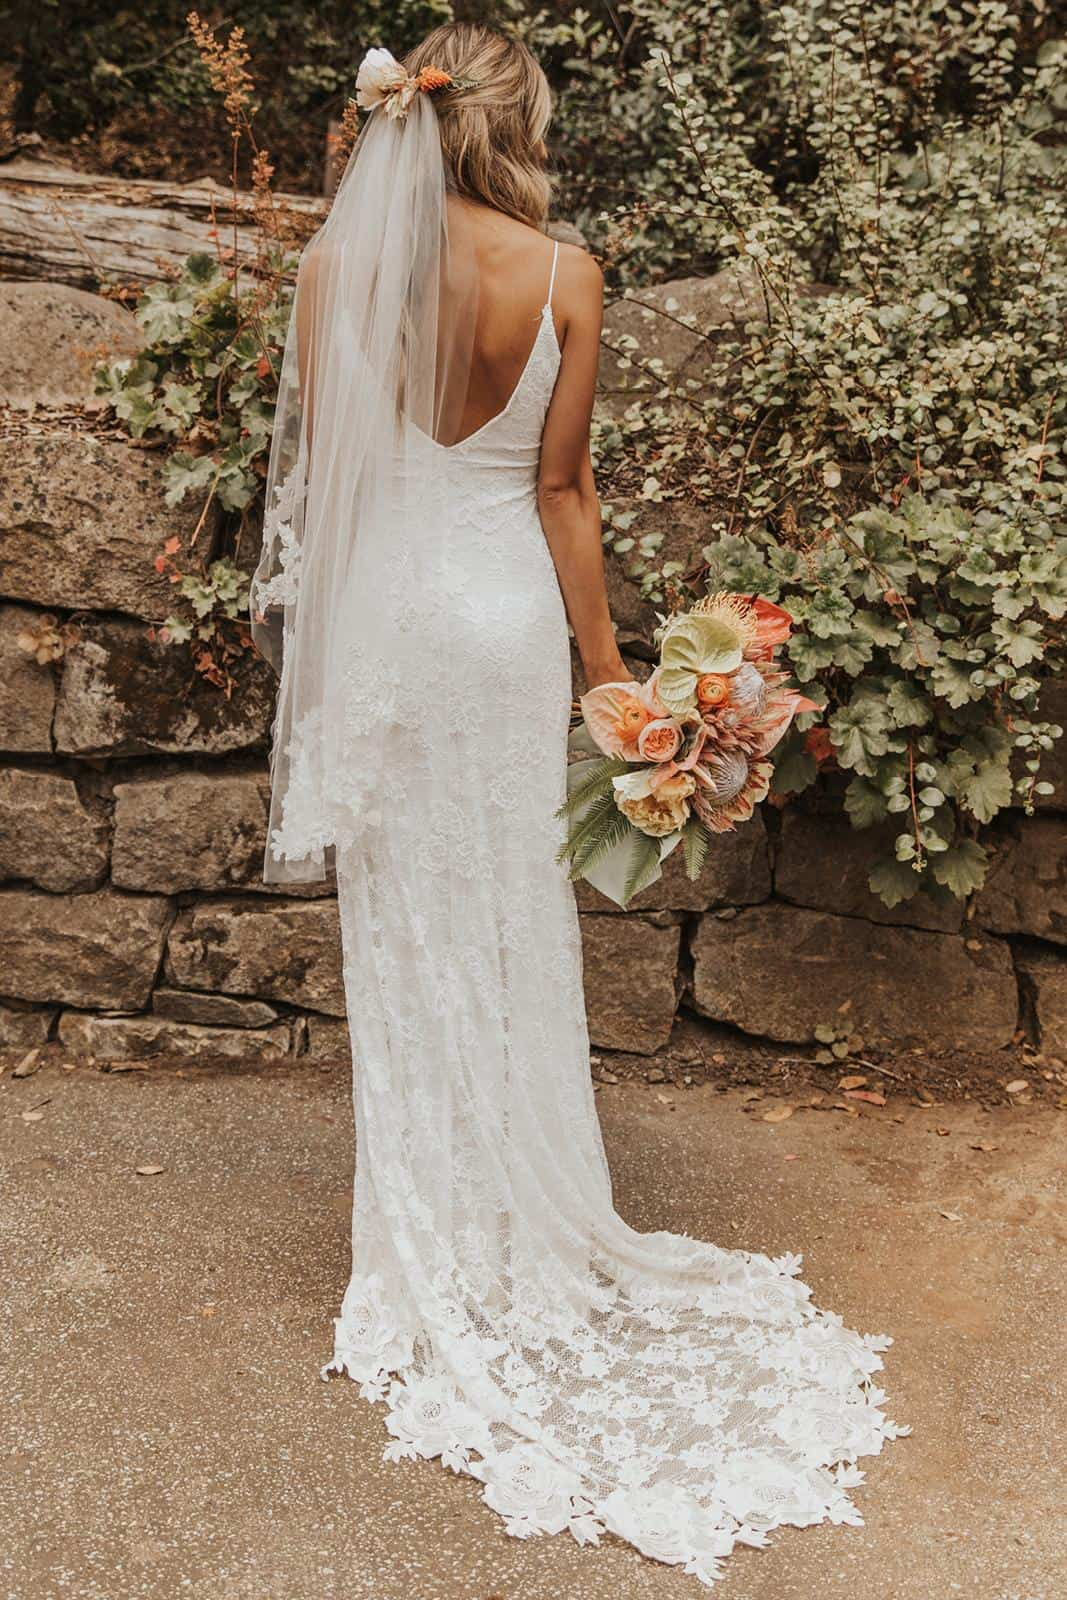 Boho Wedding Dresses Inspiration French Lace Dress Handmade by Grace Loves Lace Lottie